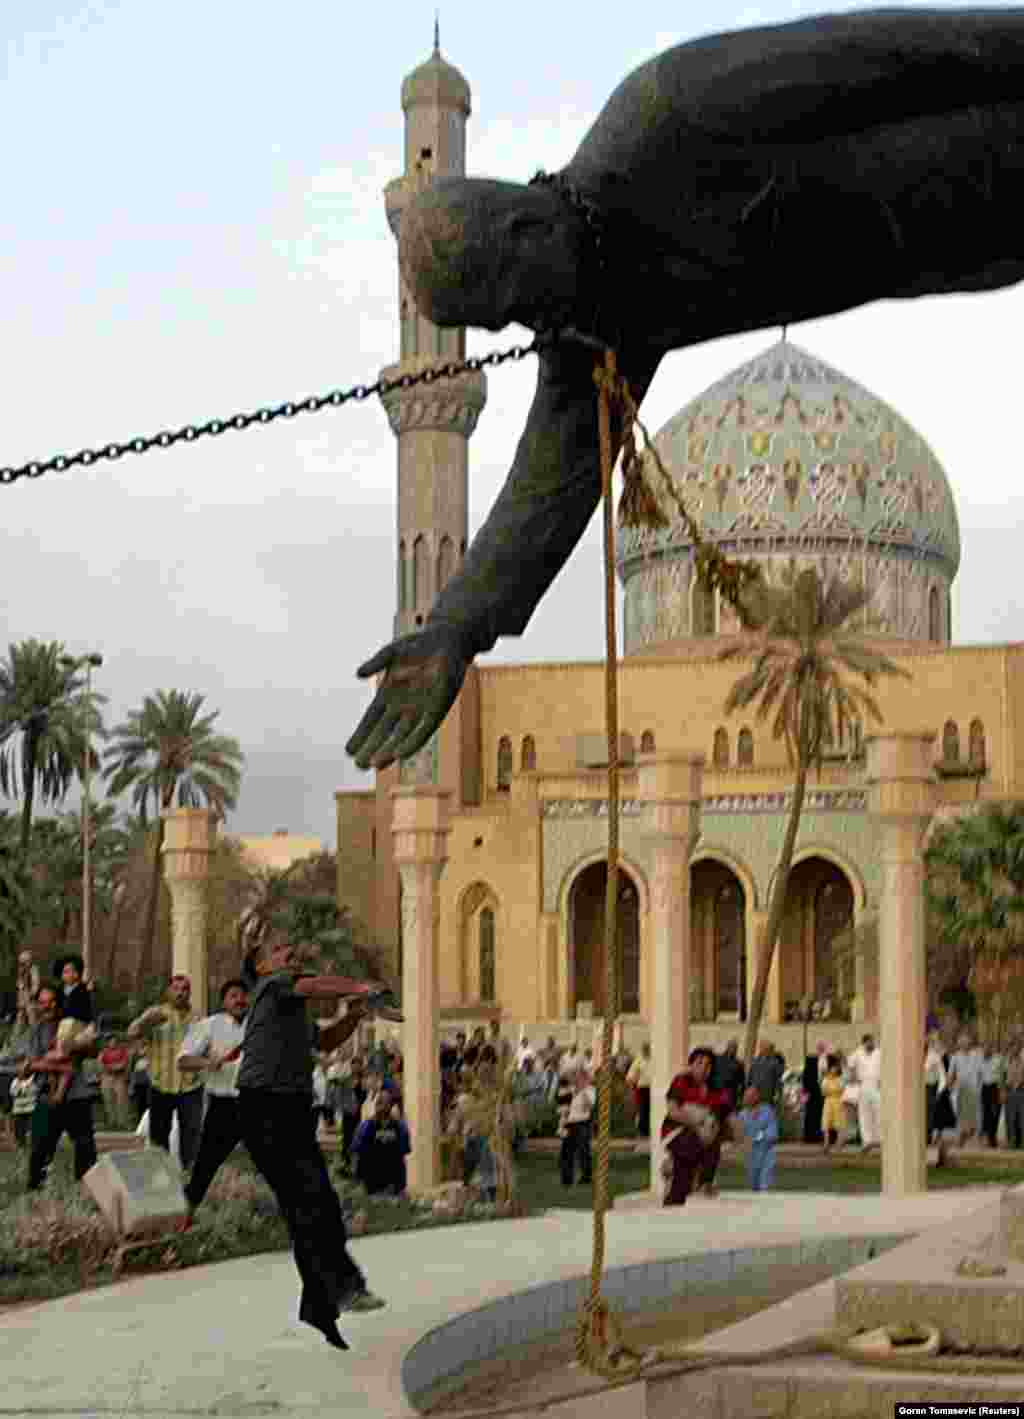 "An Iraqi man throws stones at a statue of Saddam Hussein on April 9, 2003. The day before this photograph was taken a U.S. plane had attacked the Al-Jazeera offices in Baghdad, killing Tomasevic's colleague and friend Tareq Ayoub. Recalling the day he took the iconic images of the statue being toppled, Tomasevic said: ""I didn't care, I just wanted to finish the job and go home."""